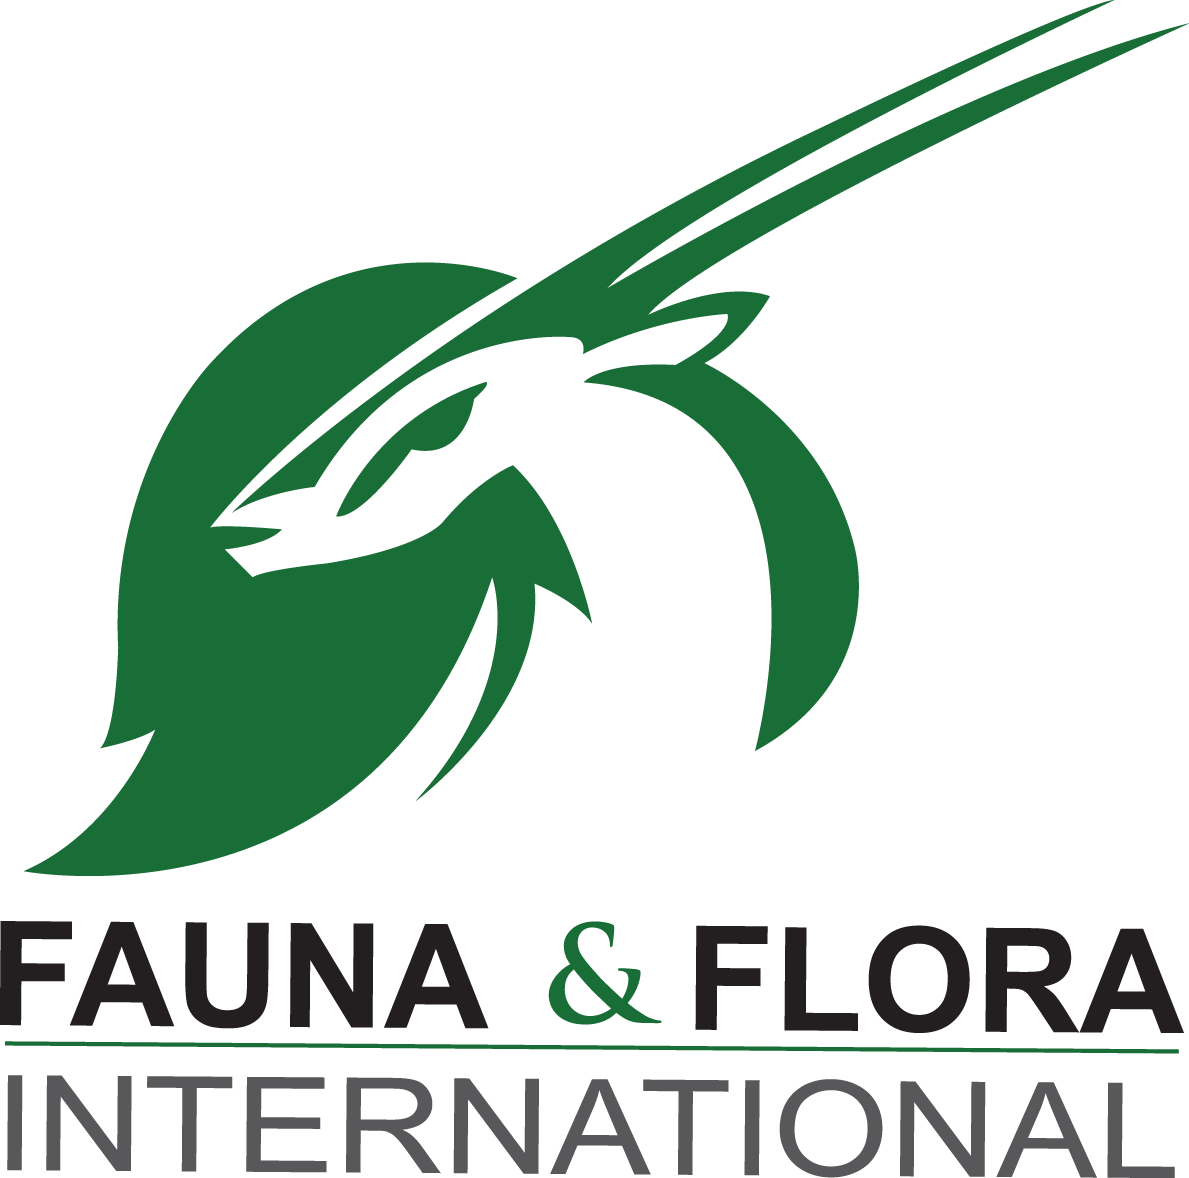 Fauna and Flora International